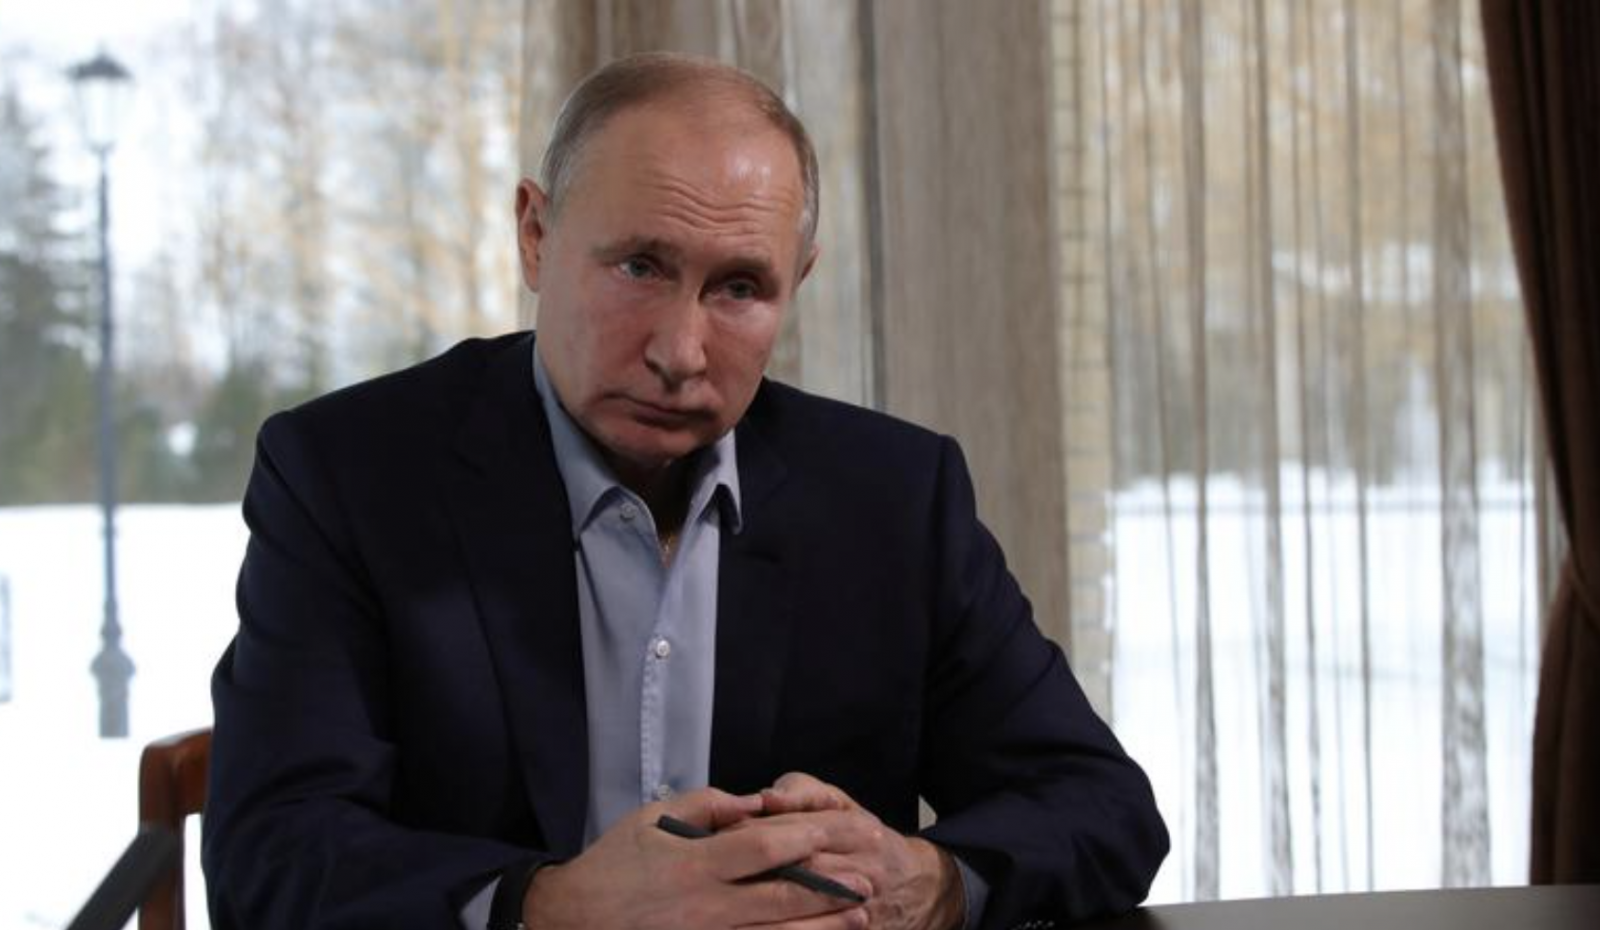 Russia's Vladimir Putin to address World Economic Forum on Wednesday